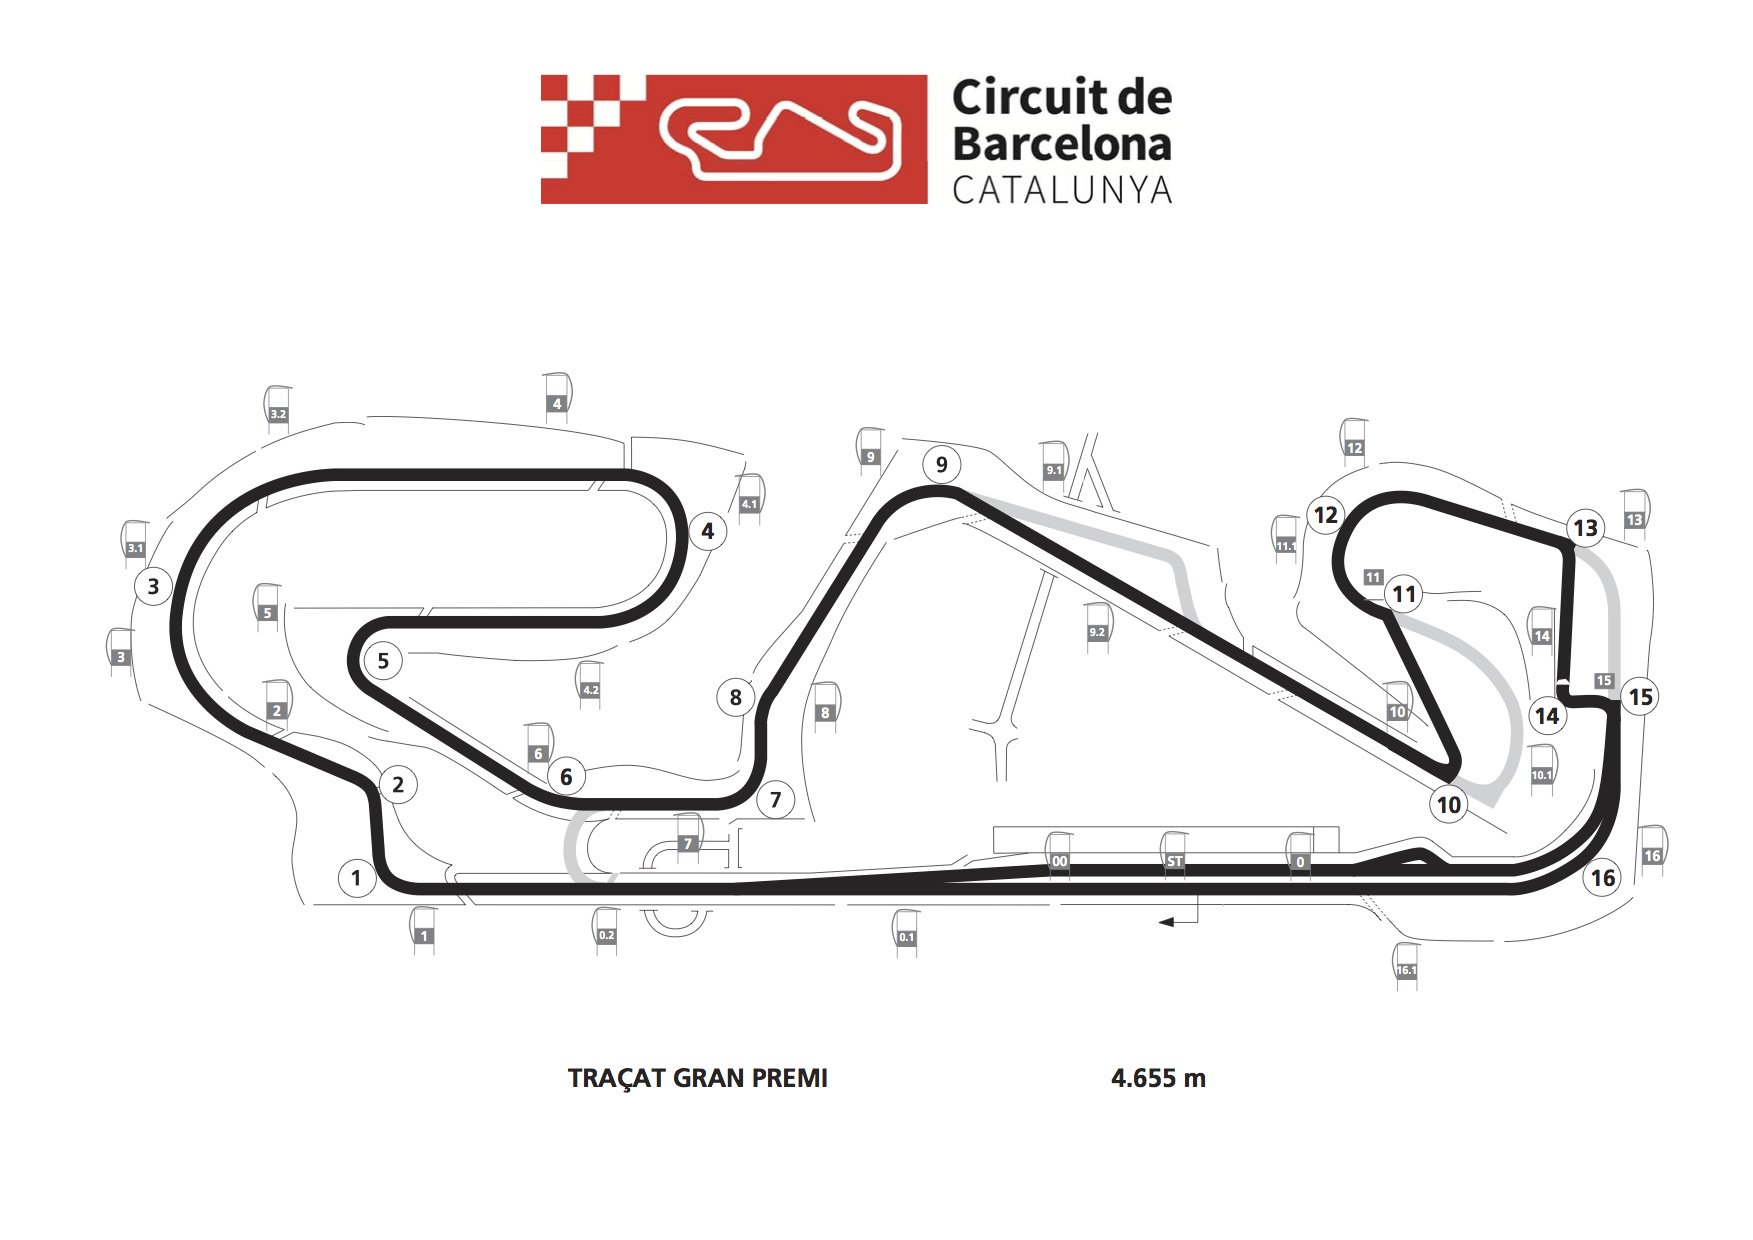 Catalunya Track & Schedule Modified After Salom Incident